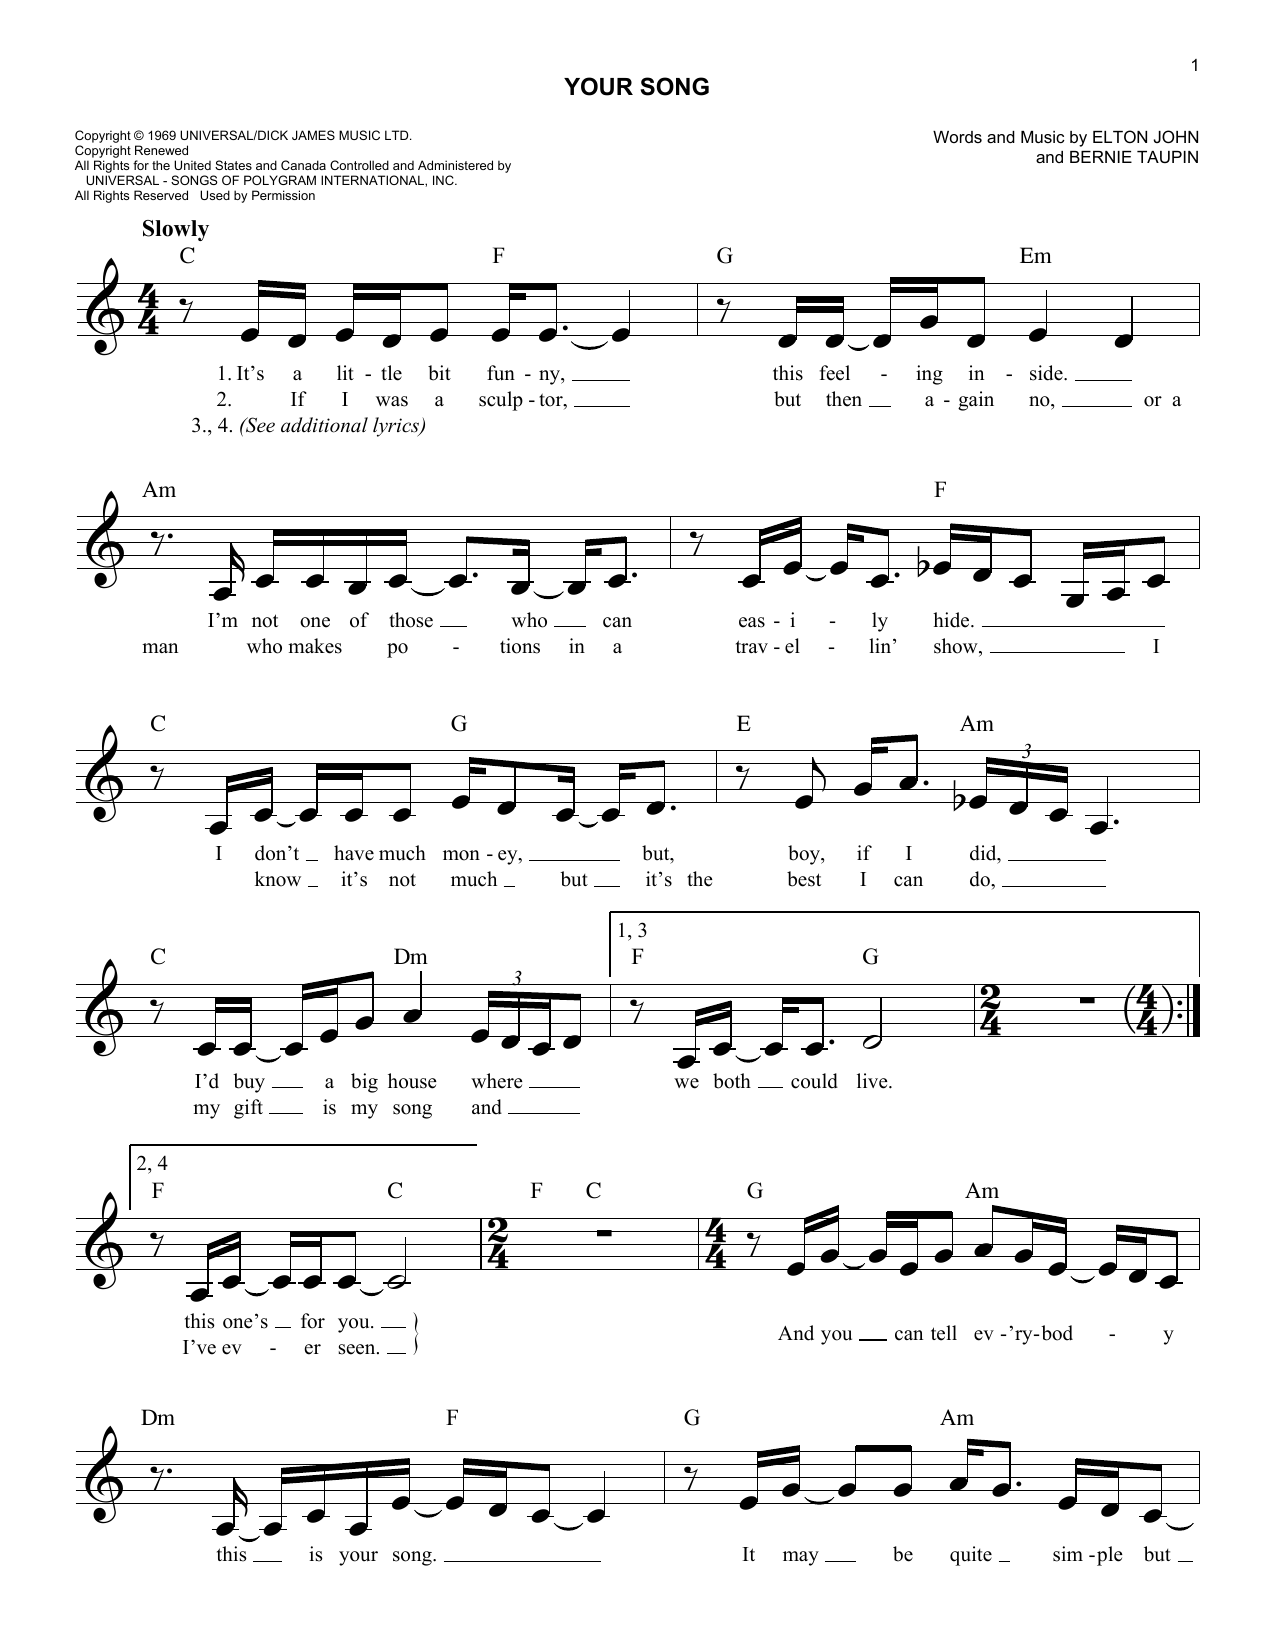 Your song chords by elton john melody line lyrics chords 175390 elton john your song melody line lyrics chords hexwebz Images